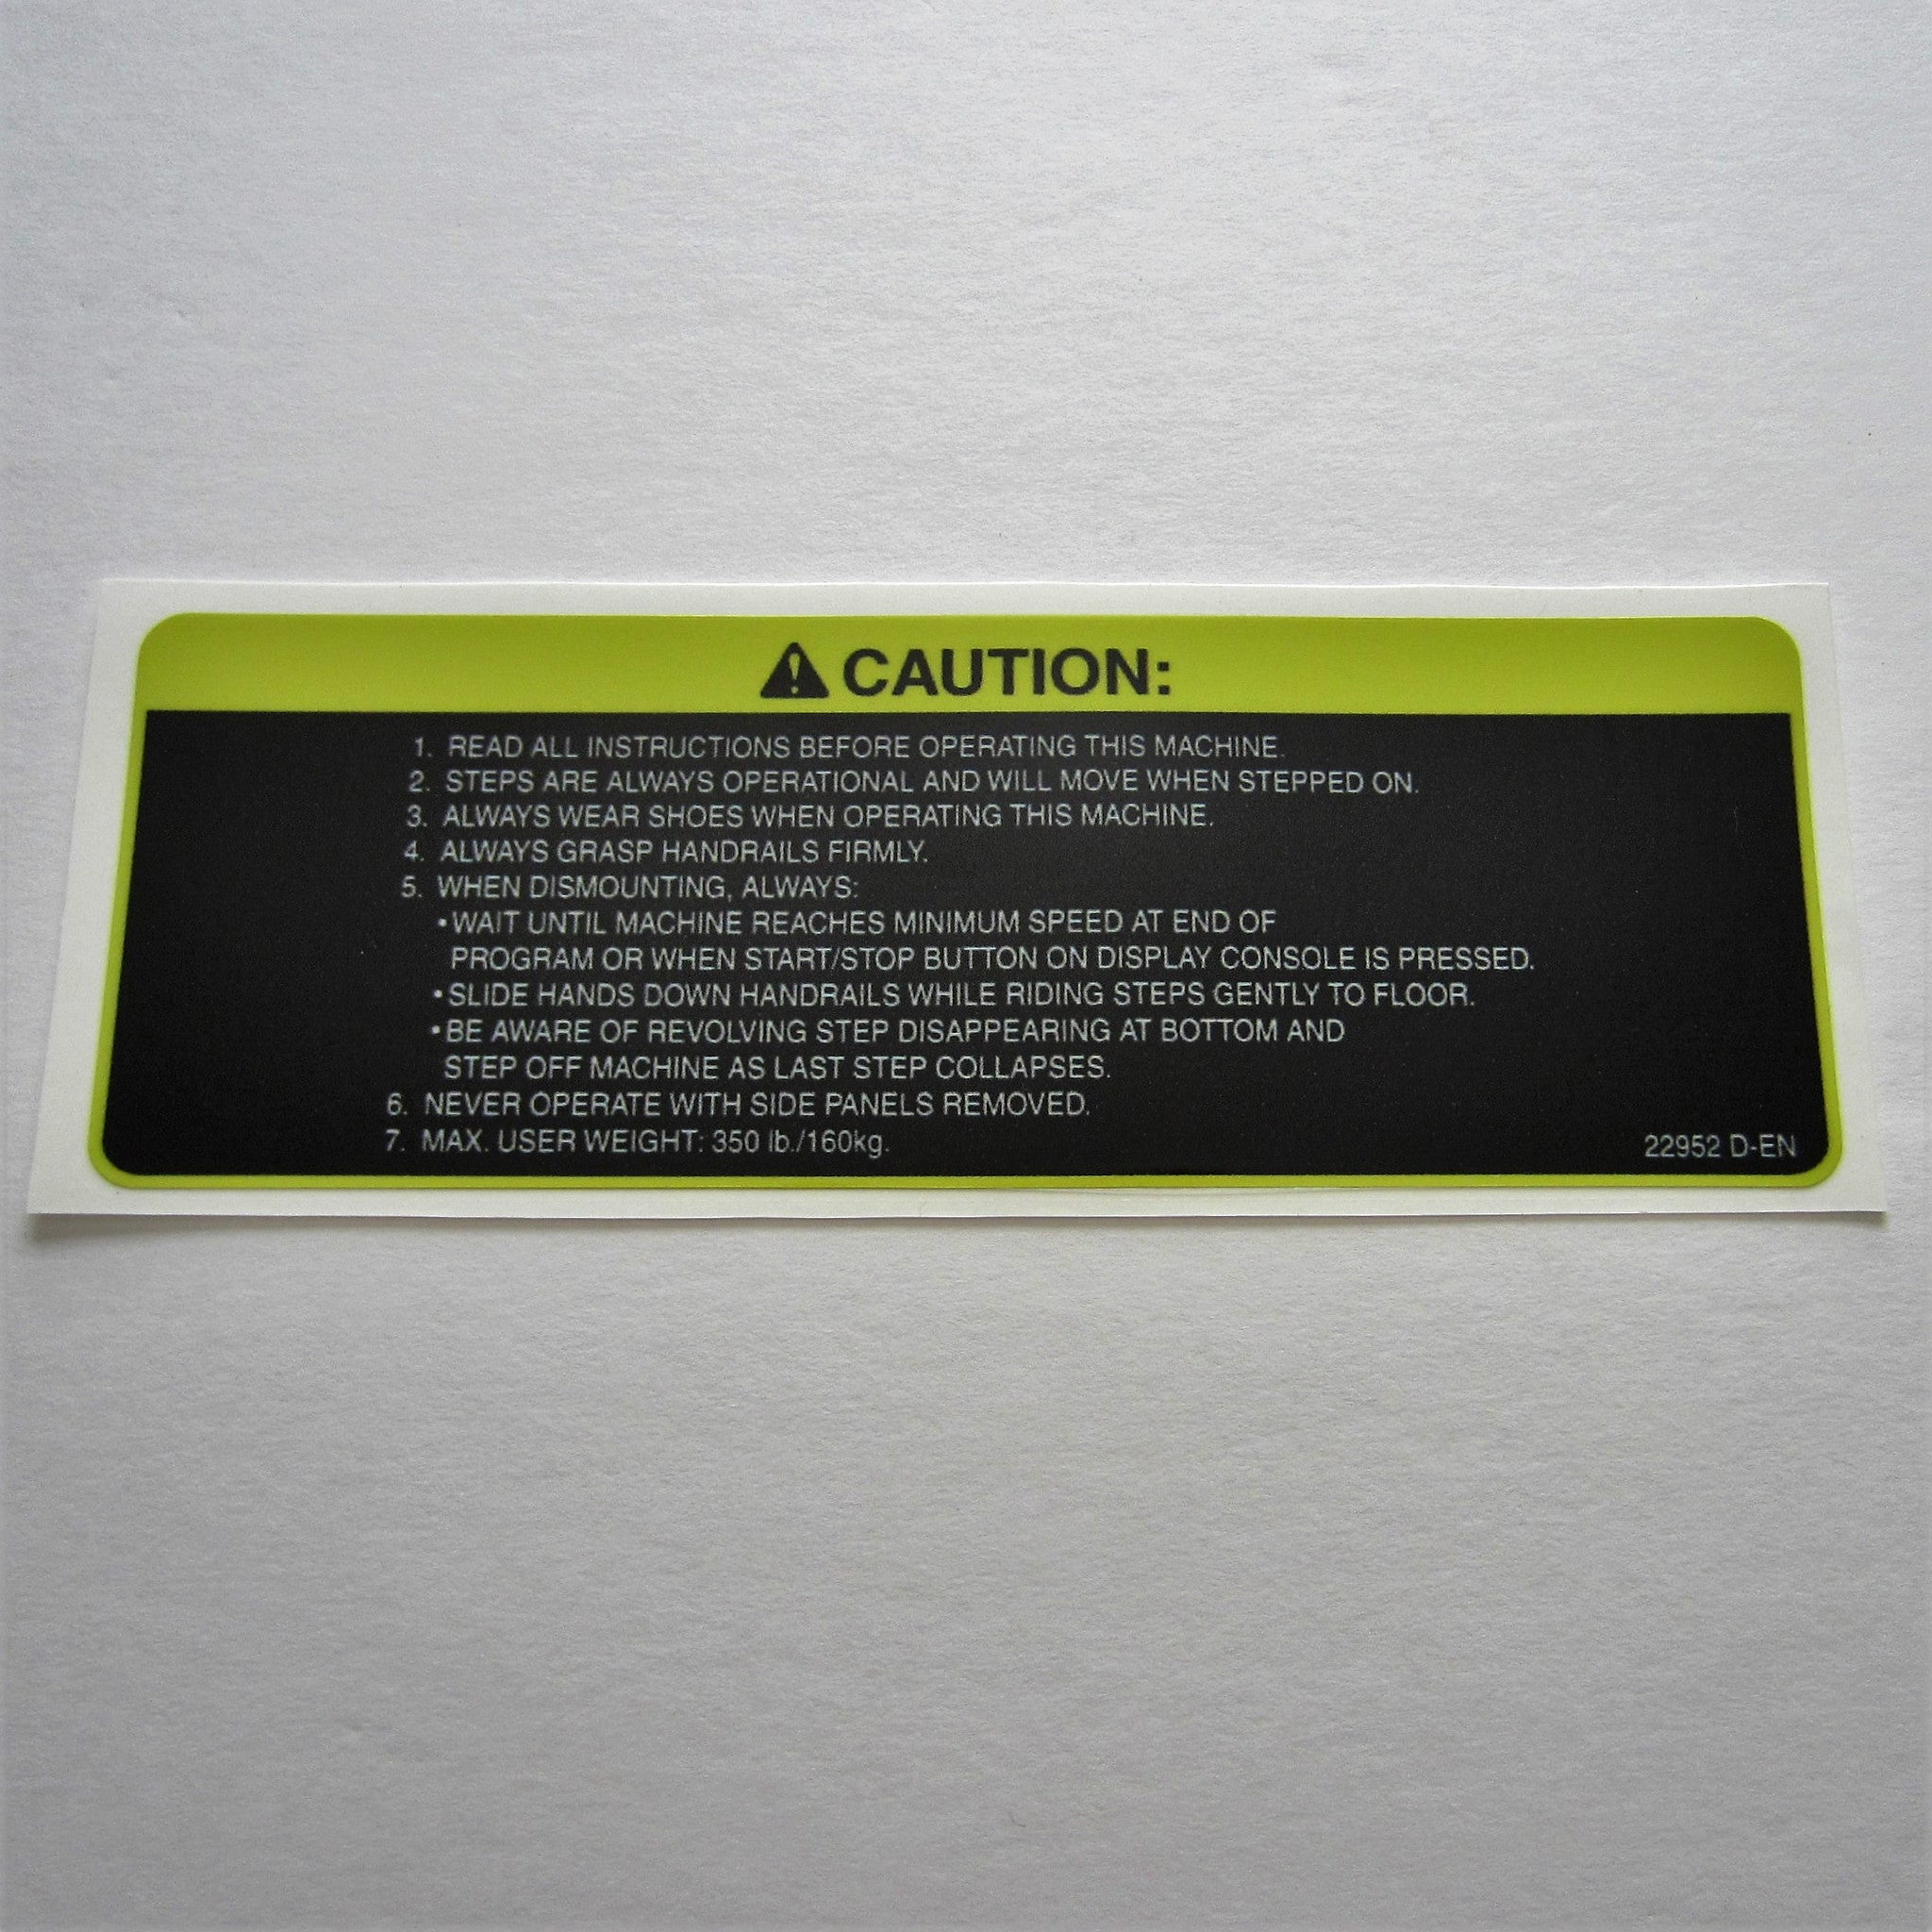 StairMaster StepMill Caution Decal